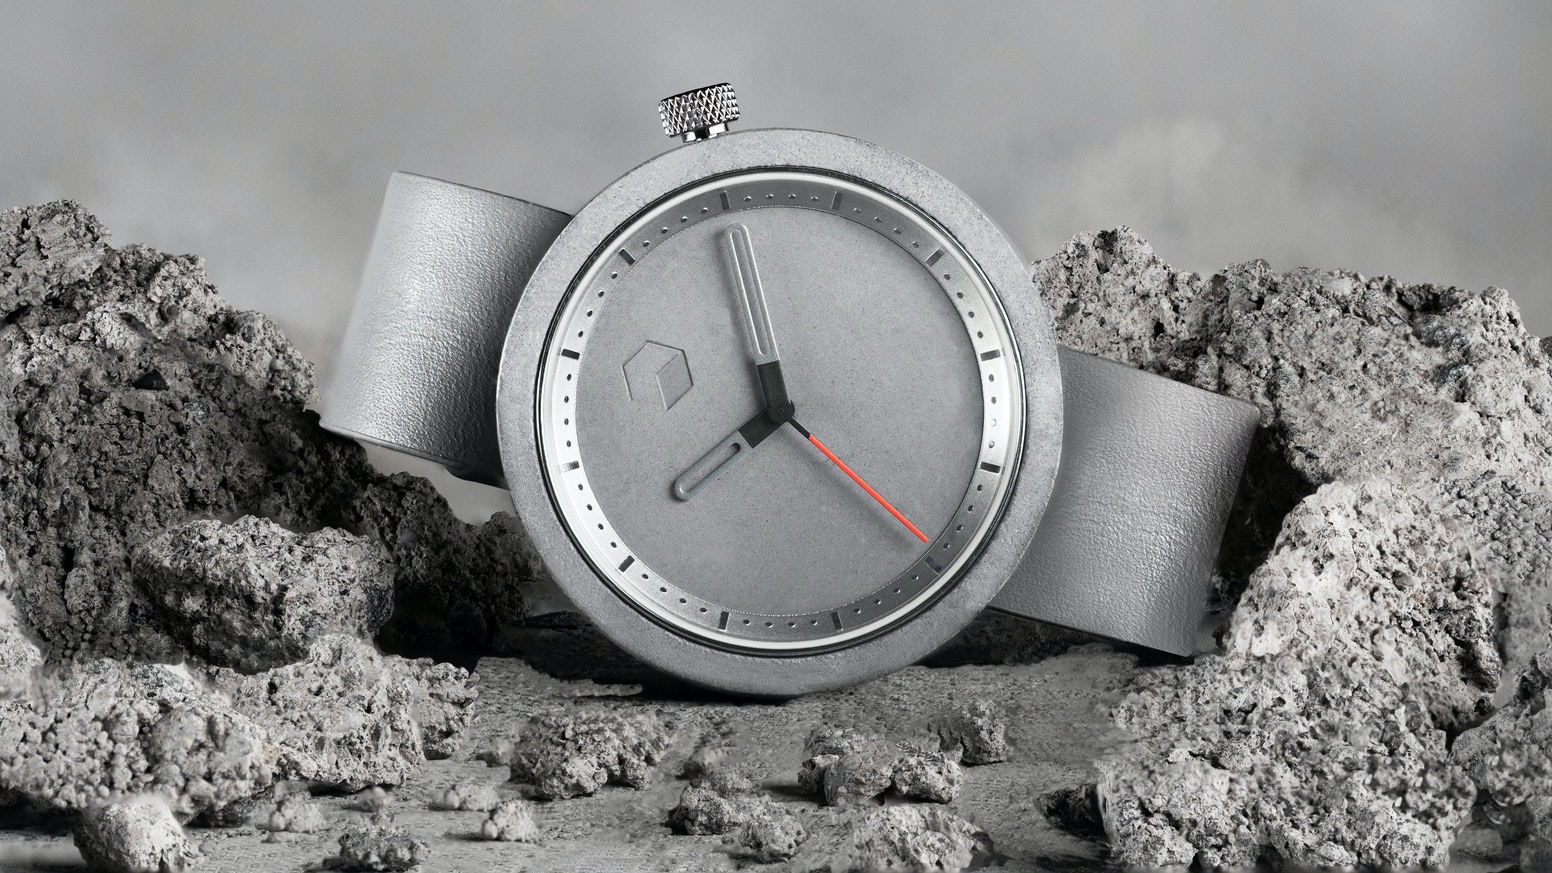 a beautiful premium design watch crafted from lightweight concrete. Designed to be different.